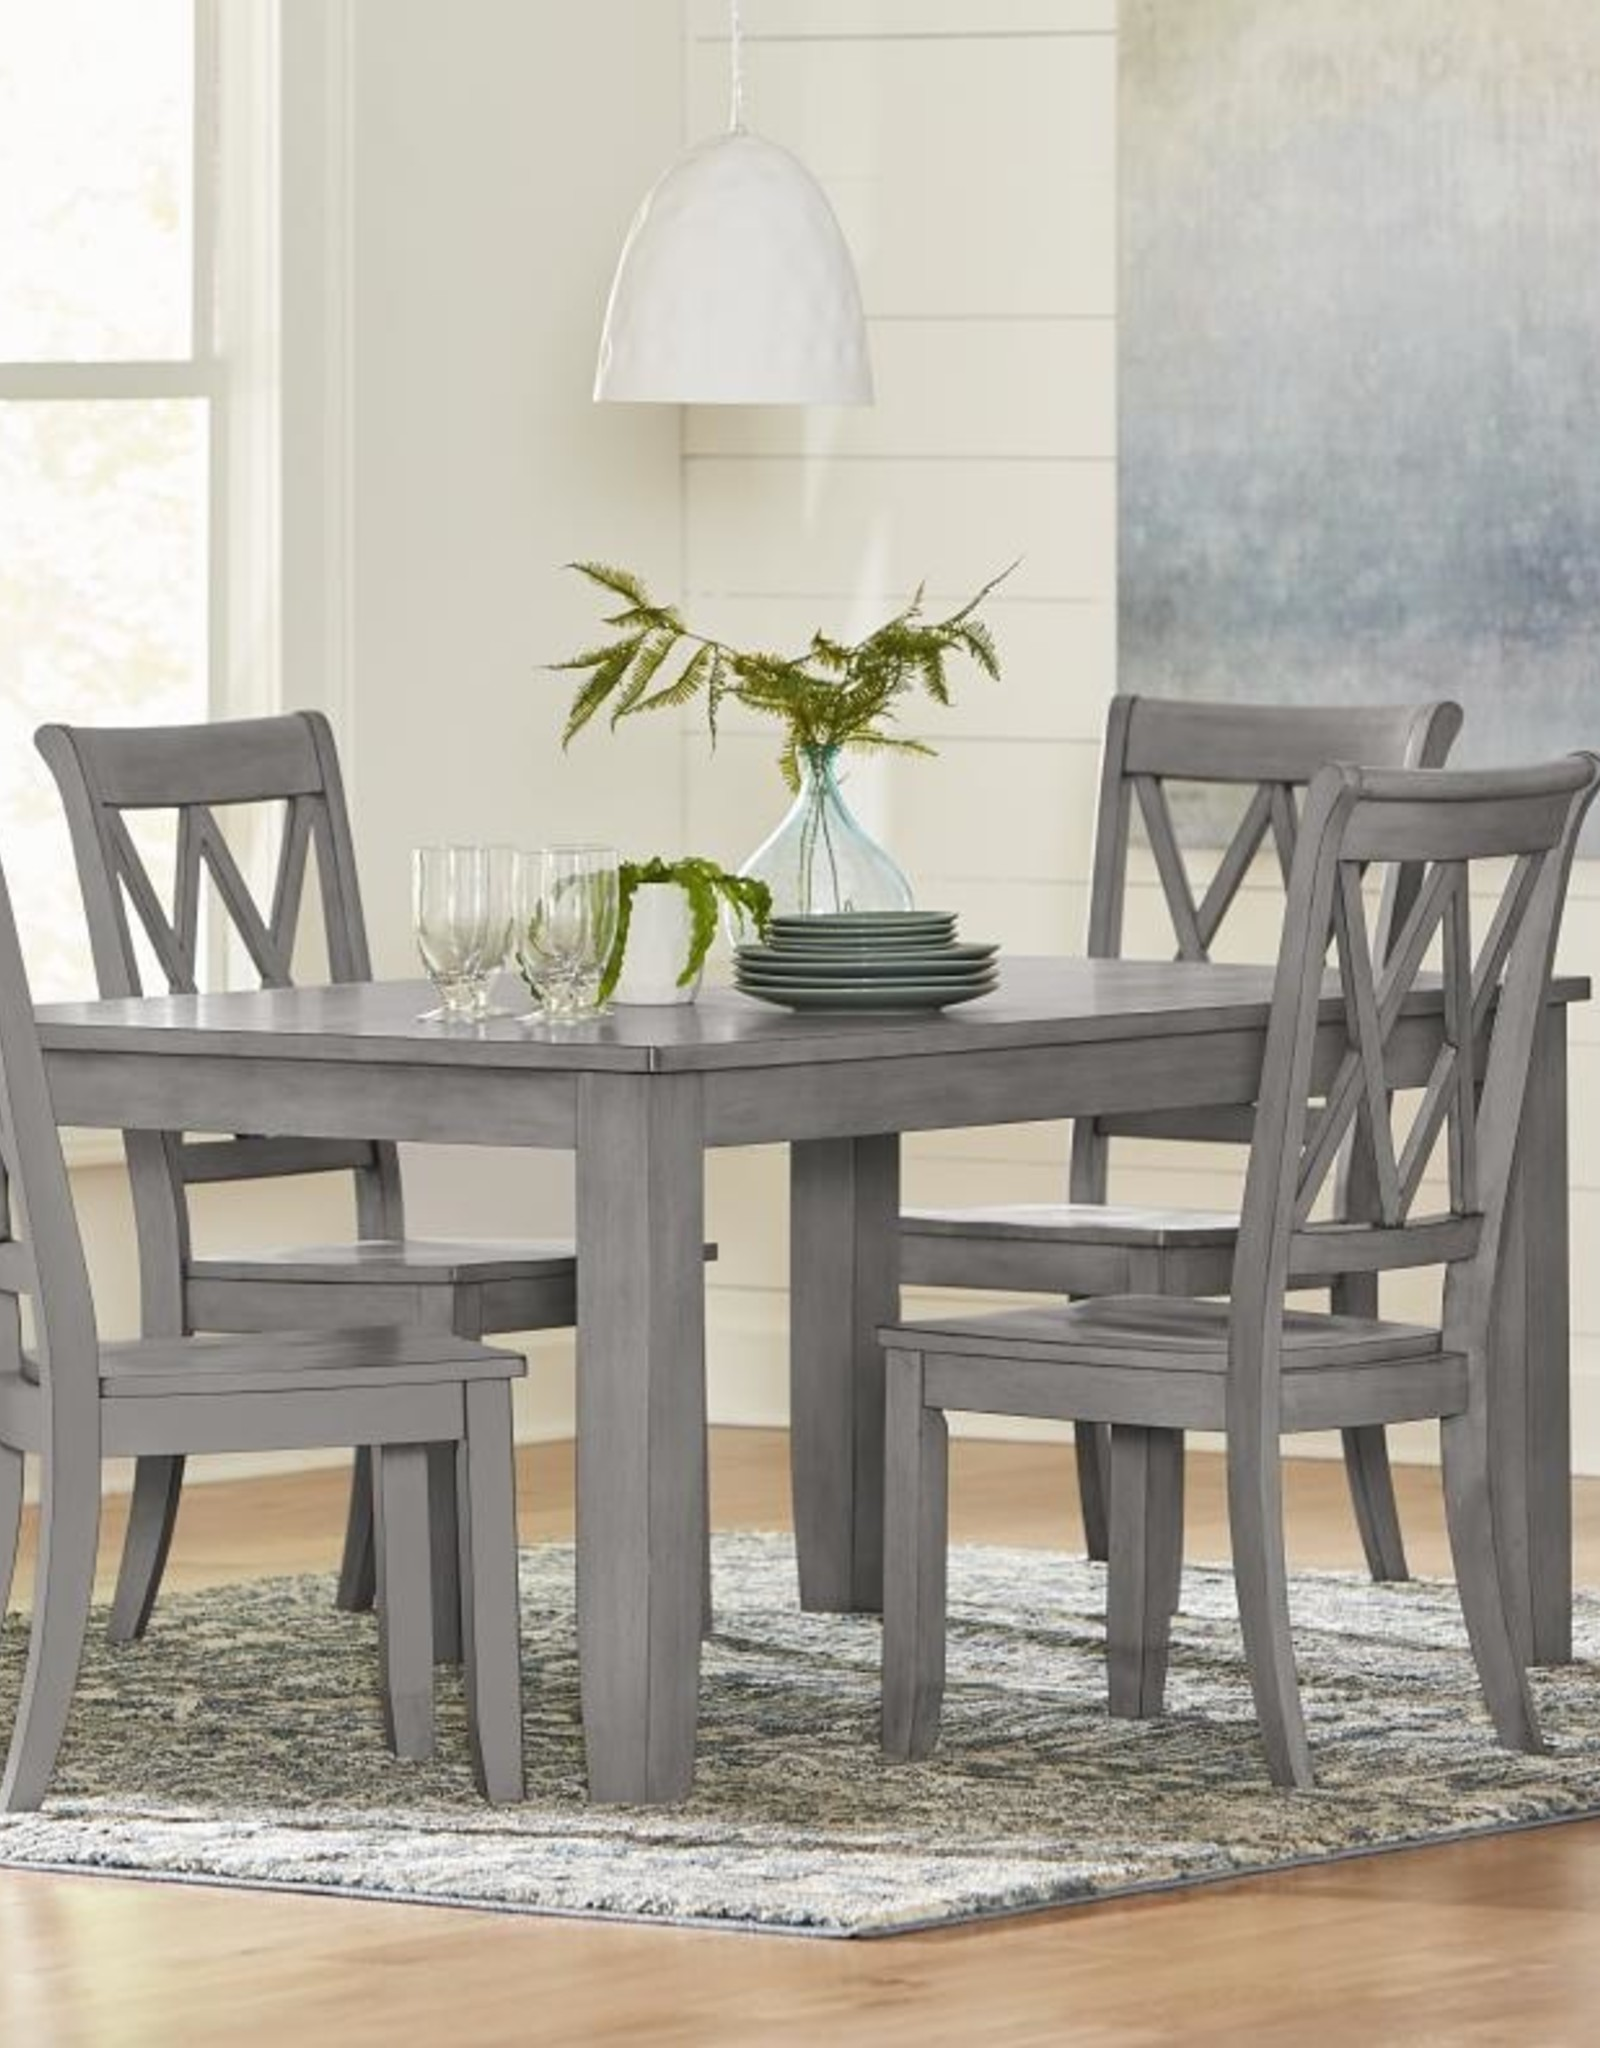 Standard Furniture Baldwin Grey Dining Table w/ 4 Chairs